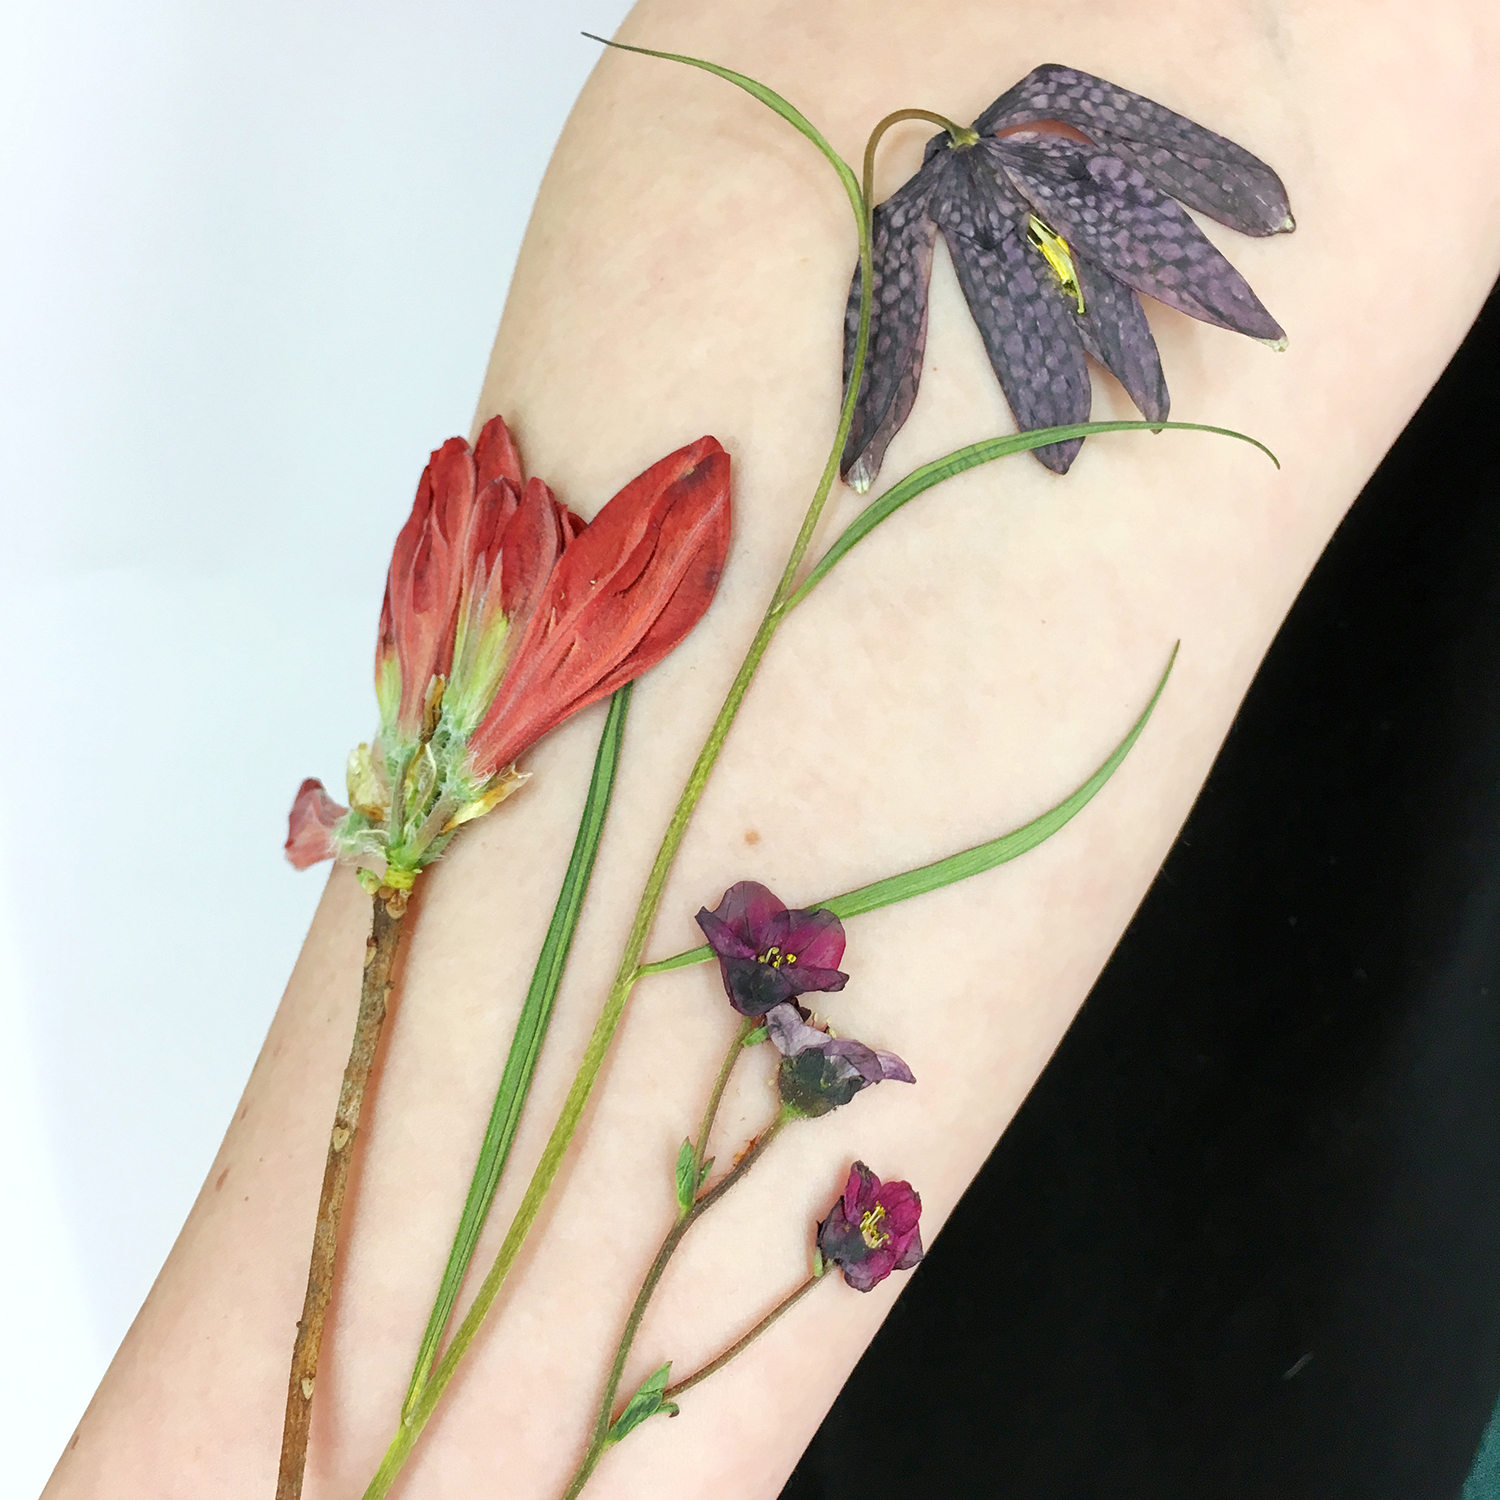 dried flowers on skin, tattooing technique